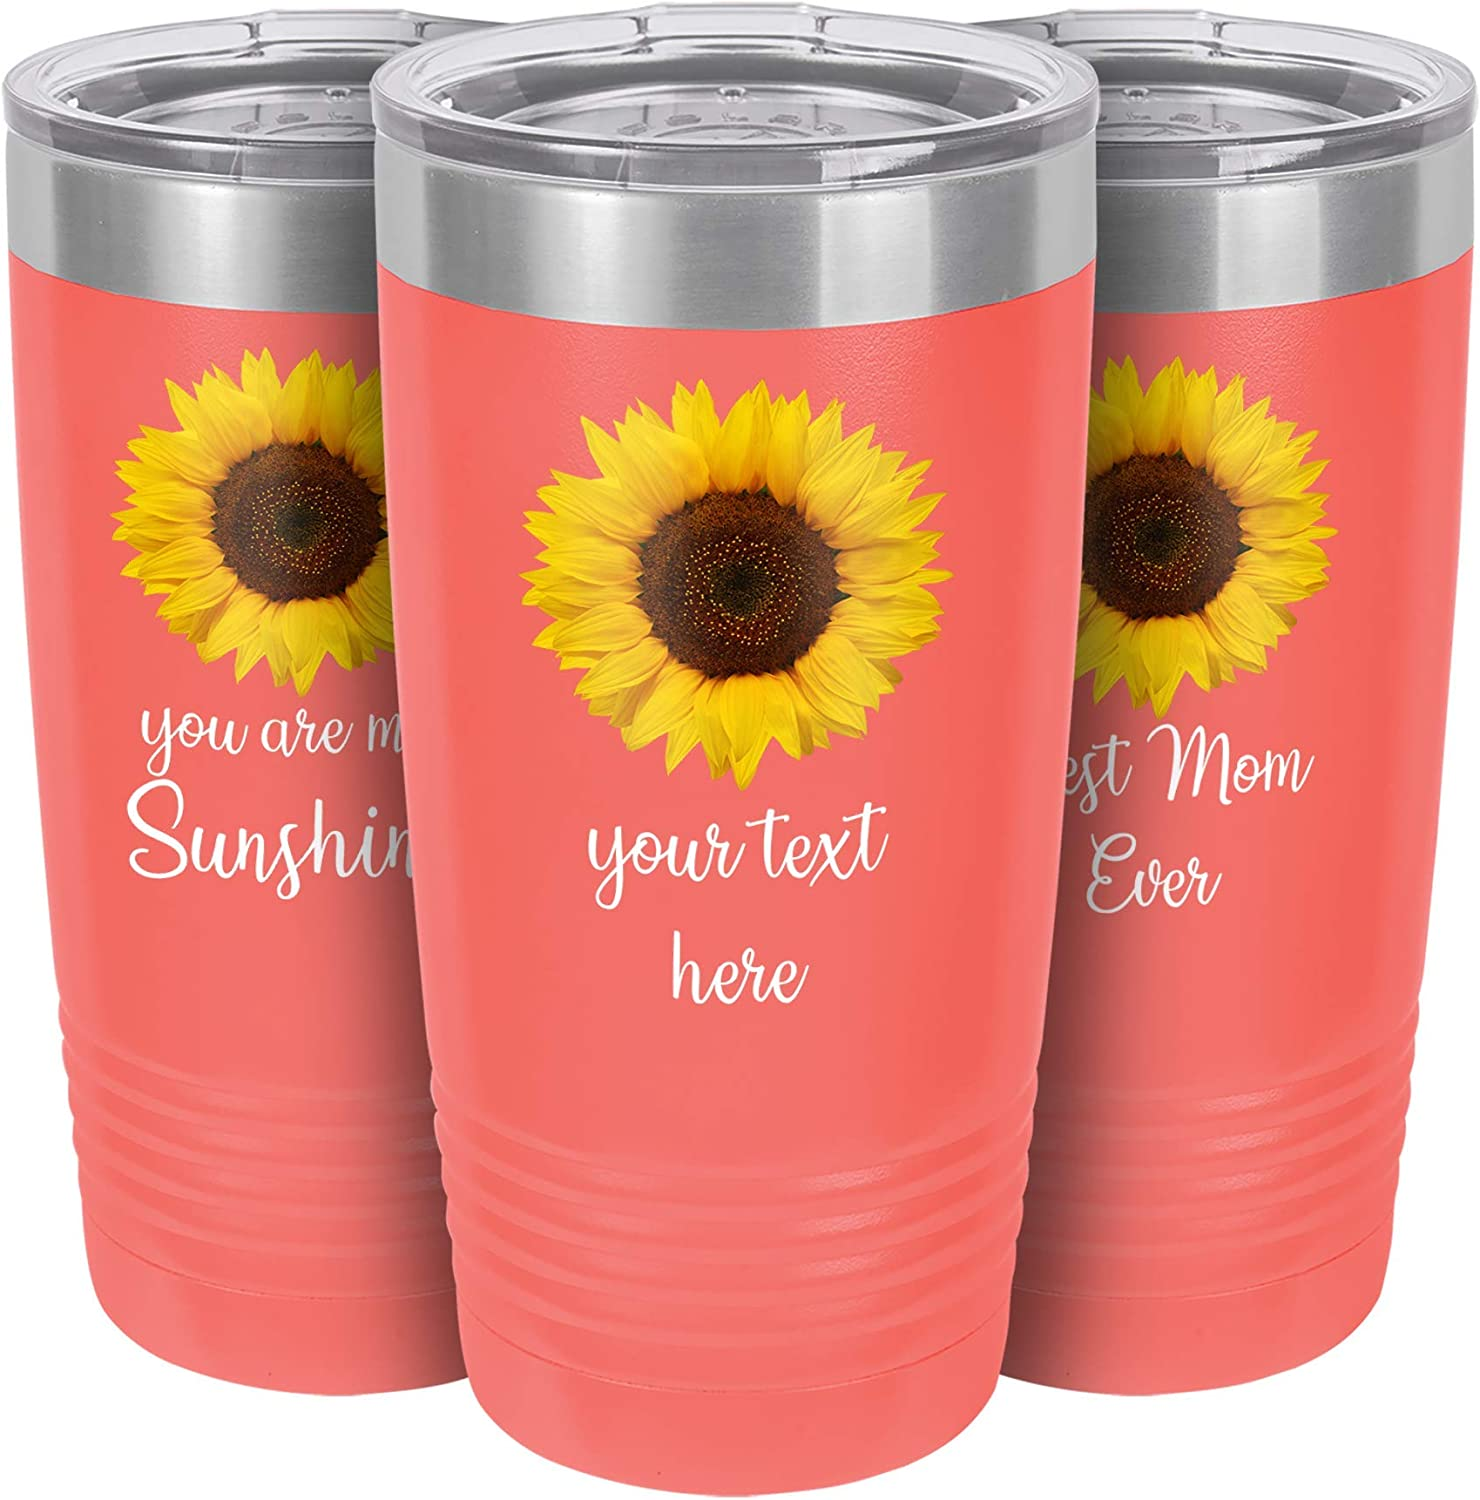 Fixed price for sale Personalized Sunflower Tumbler with Lid Super popular specialty store Re 20 oz Mug